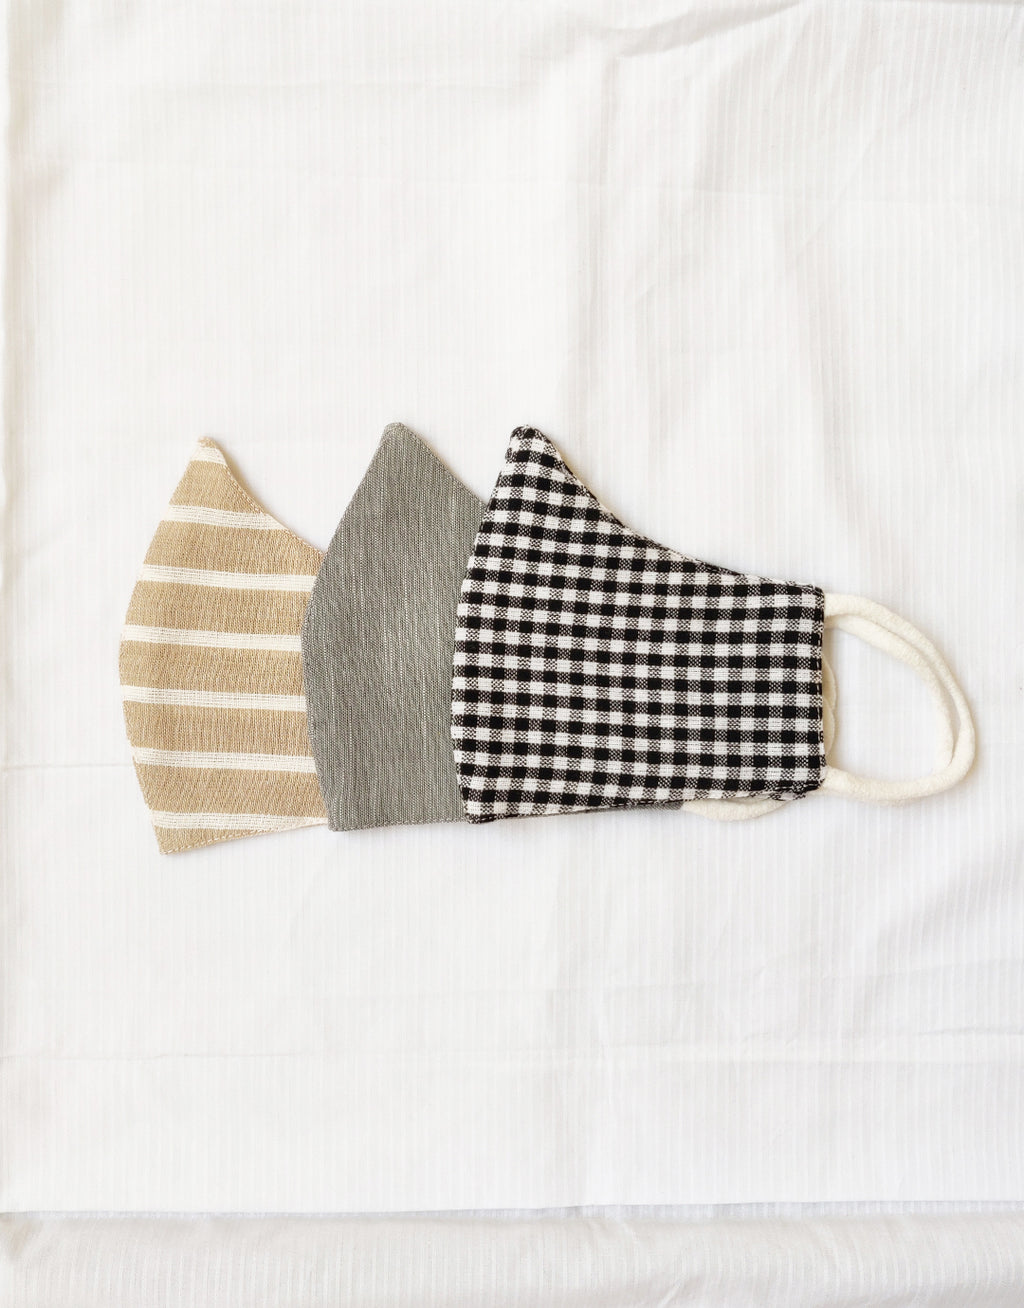 soft, breathable masks in upcycled cotton